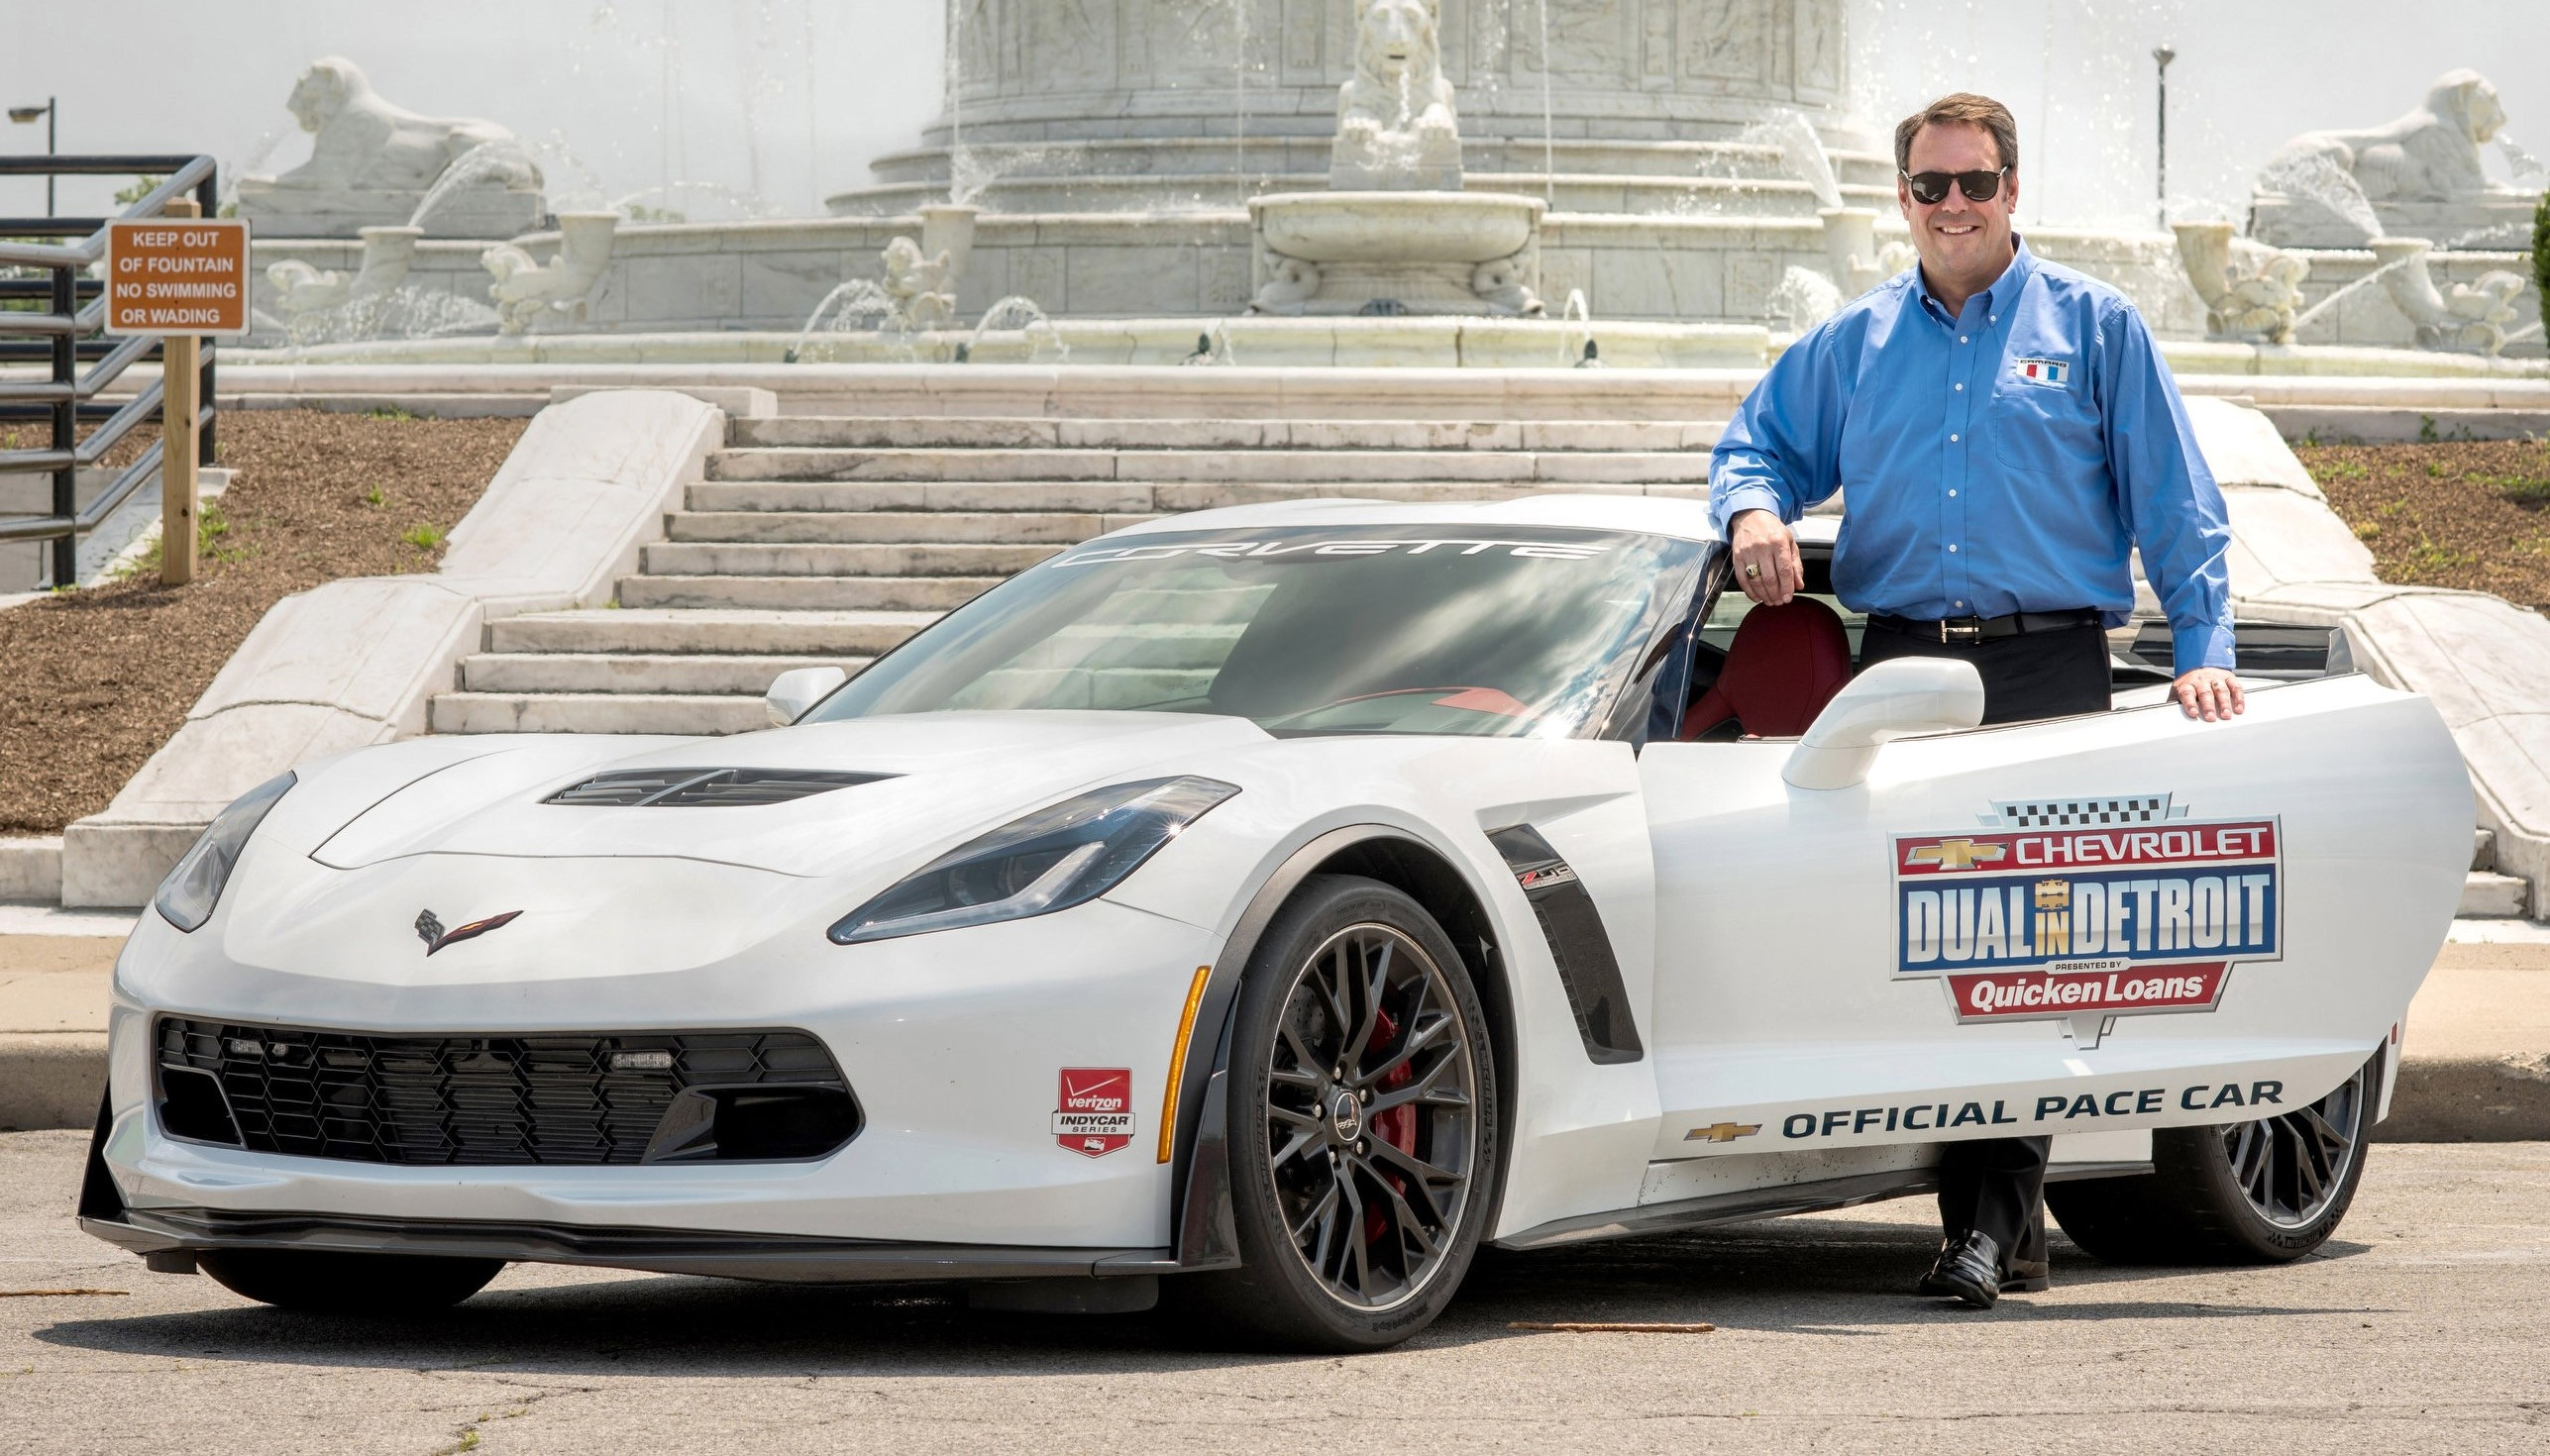 Gm Executive Mark Reuss To Pace Detroit Grand Prix In